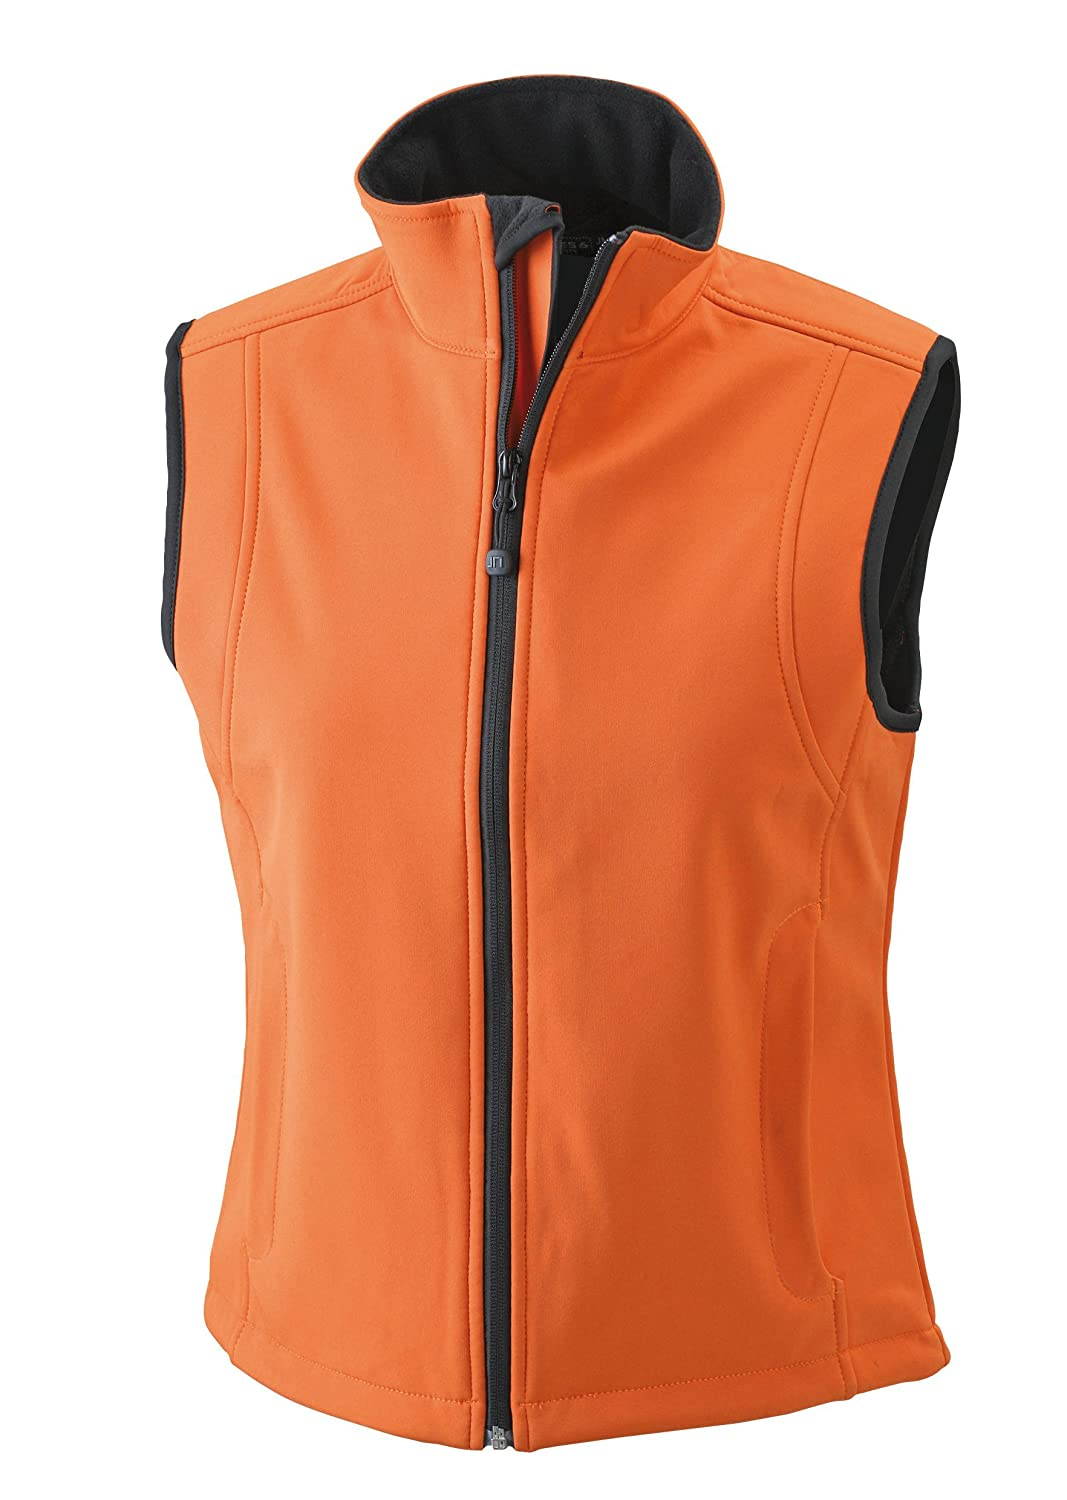 James & Nicholson Women's Softshell Outdoor Vest JN138 por